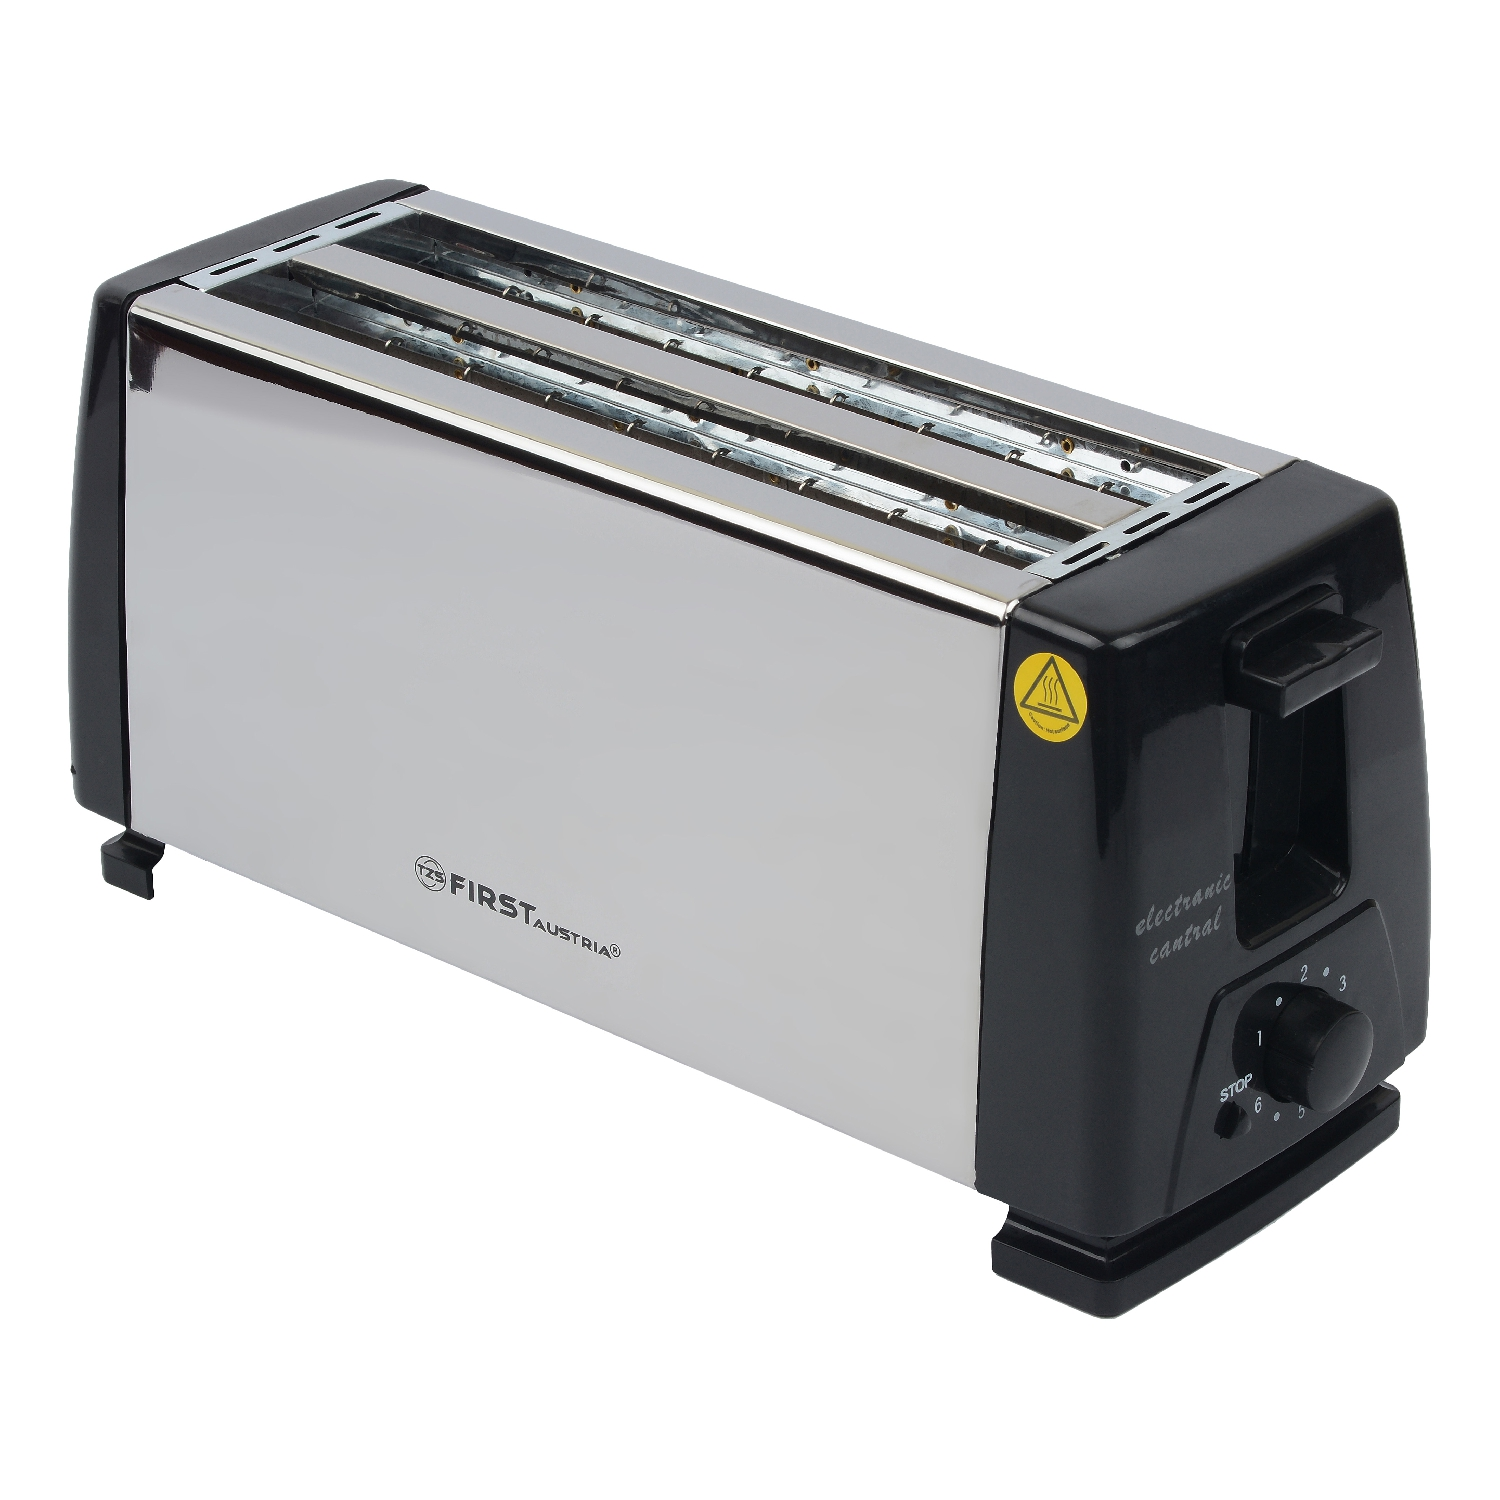 Toaster FIRST FA-5367-CH тостер first fa 5367 1 чёрный